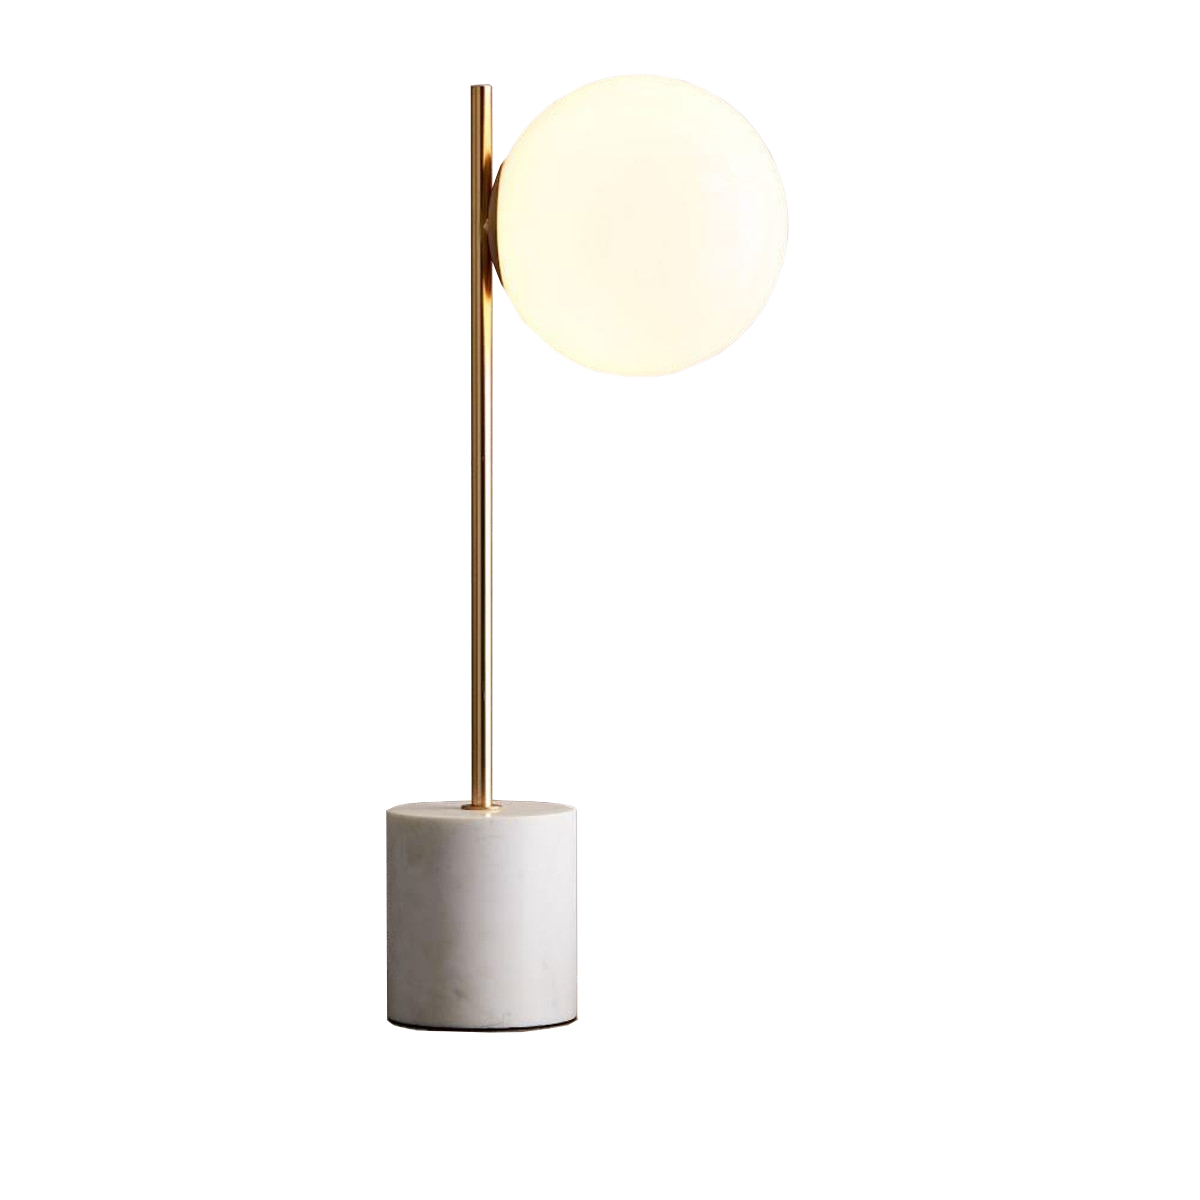 The 'Sphere and Stem' table lamp from  West Elm  will be sure to brighten up Natalie's Christmas!